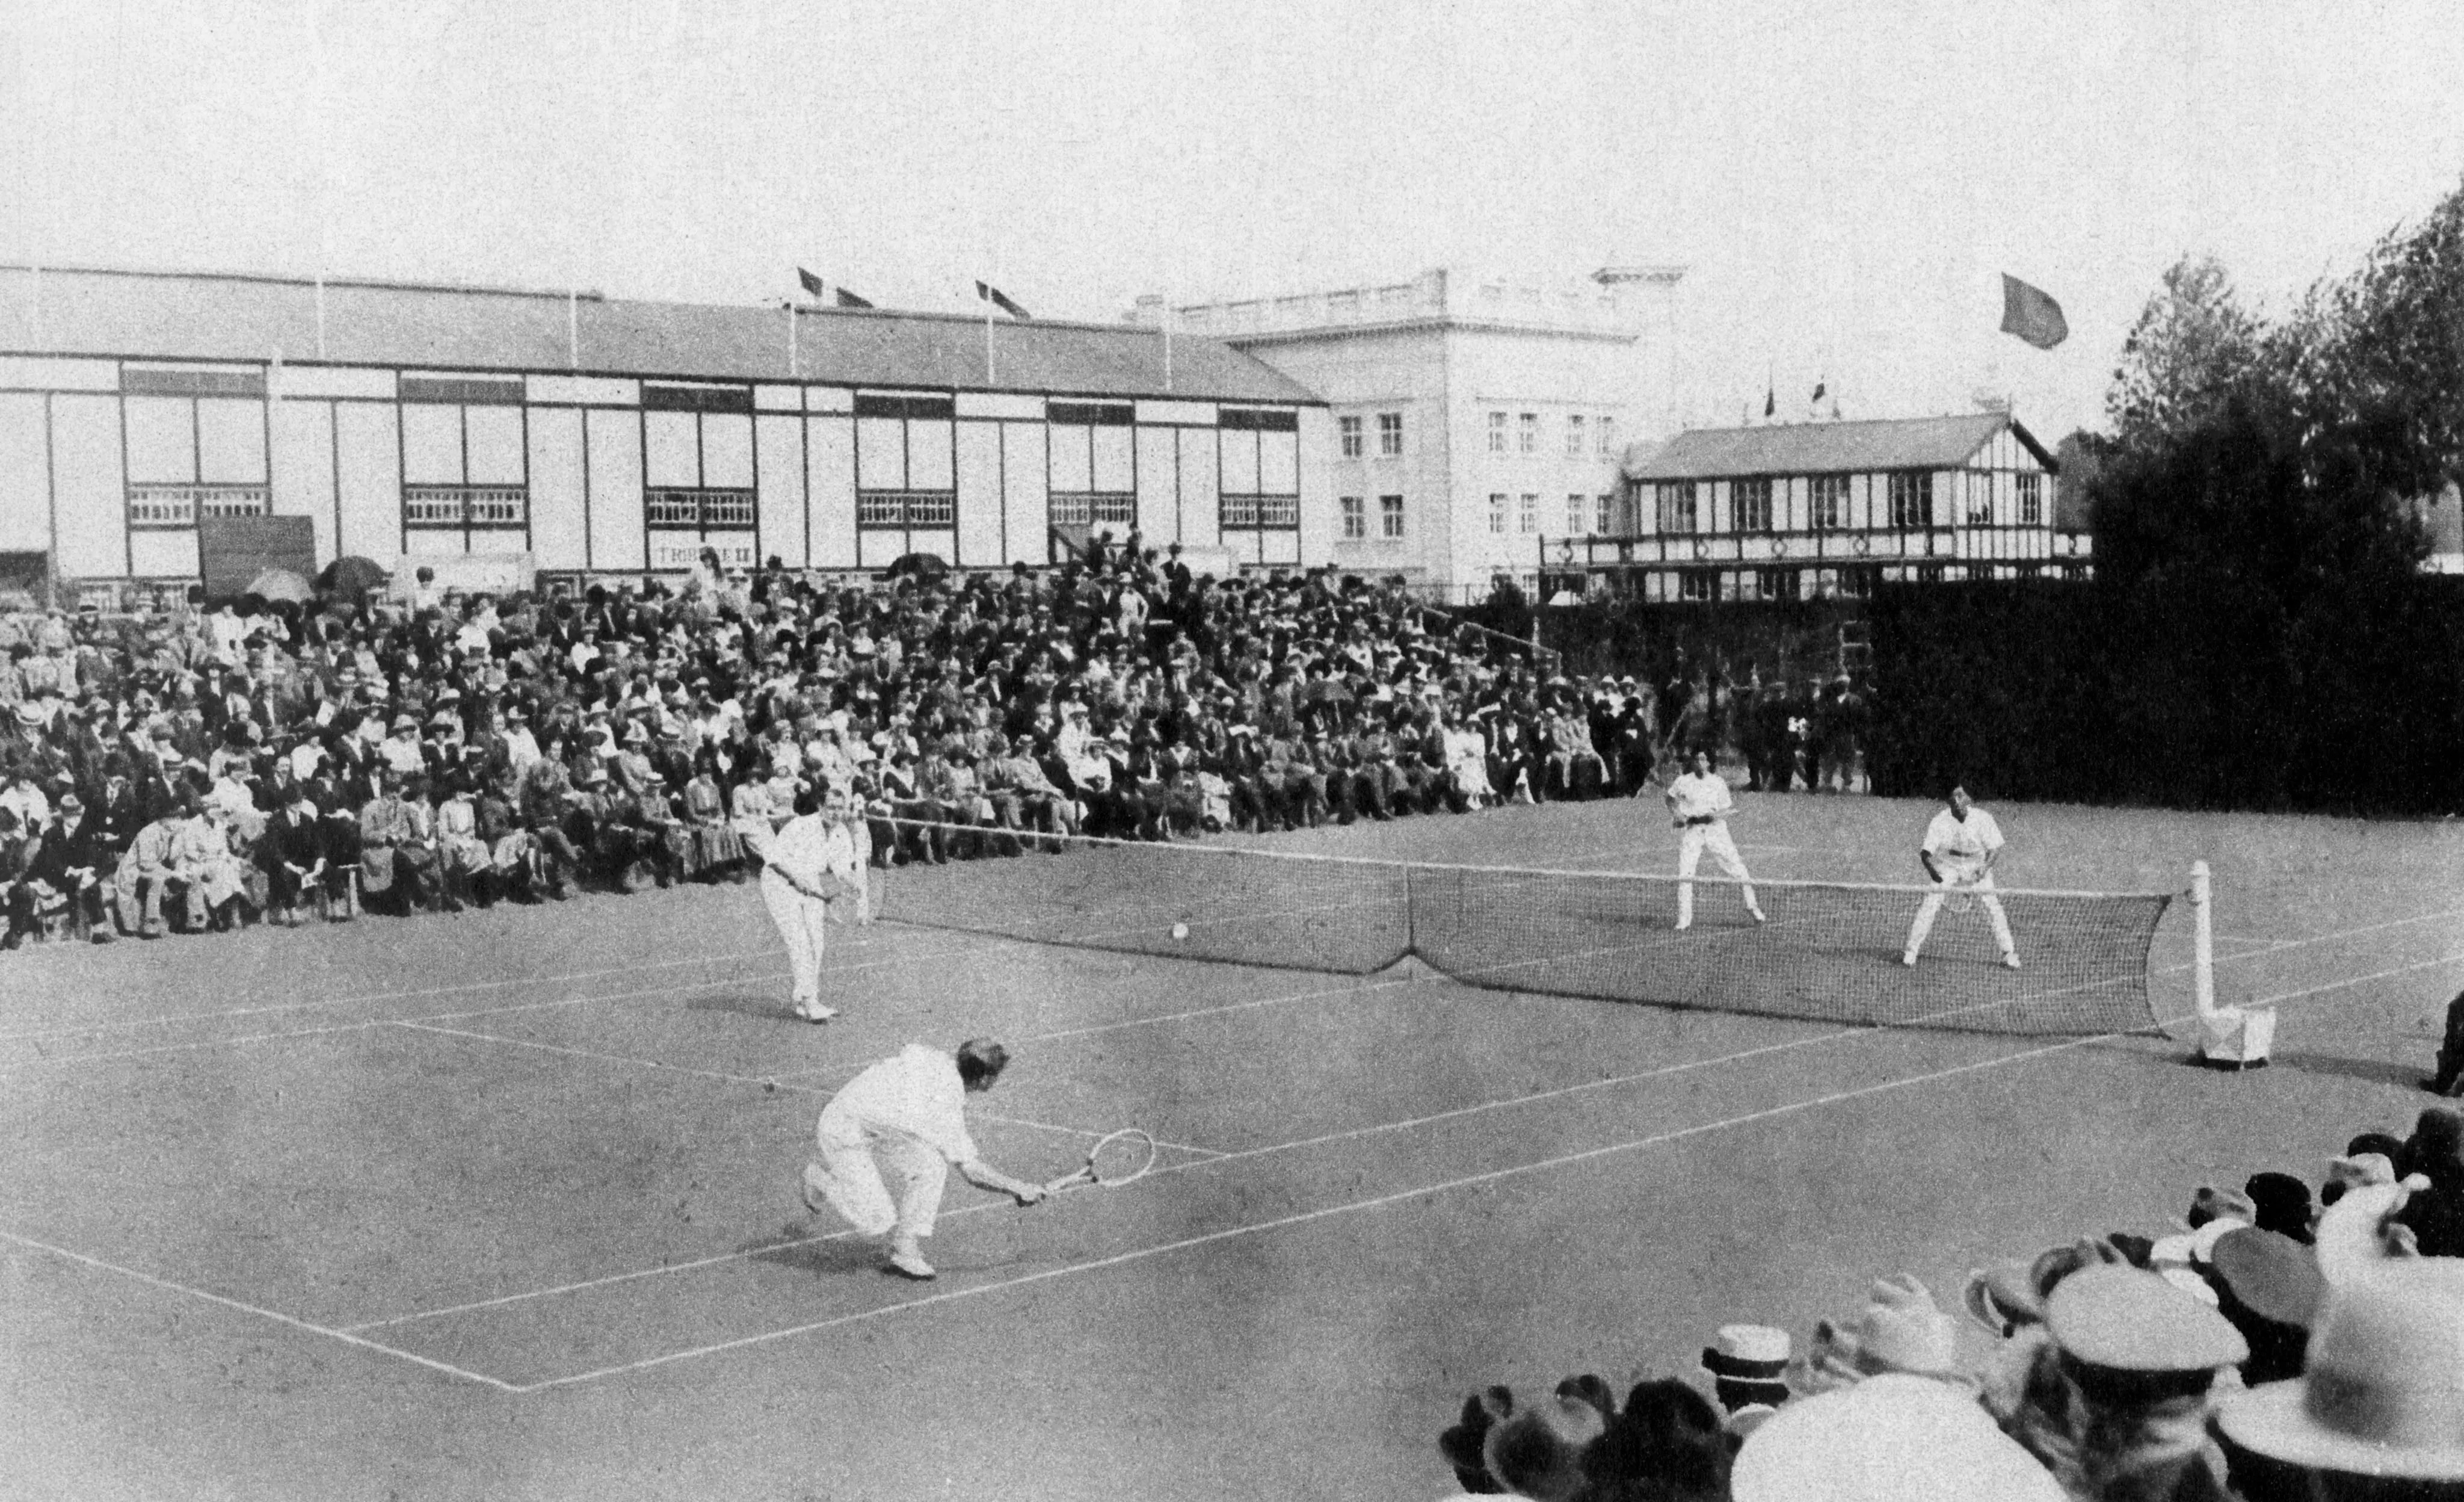 Antwerp, 1920: The Olympics moved to Antwerp in the hope of bringing together a city devastated by World War I. Below, Great Britain's Max Woosnam (top left) and partner Oswald Turnbull play against Ichiya Kumagae and Seiichiro Kashio of Japan. Great Britain won the match to claim the Gold Medal.